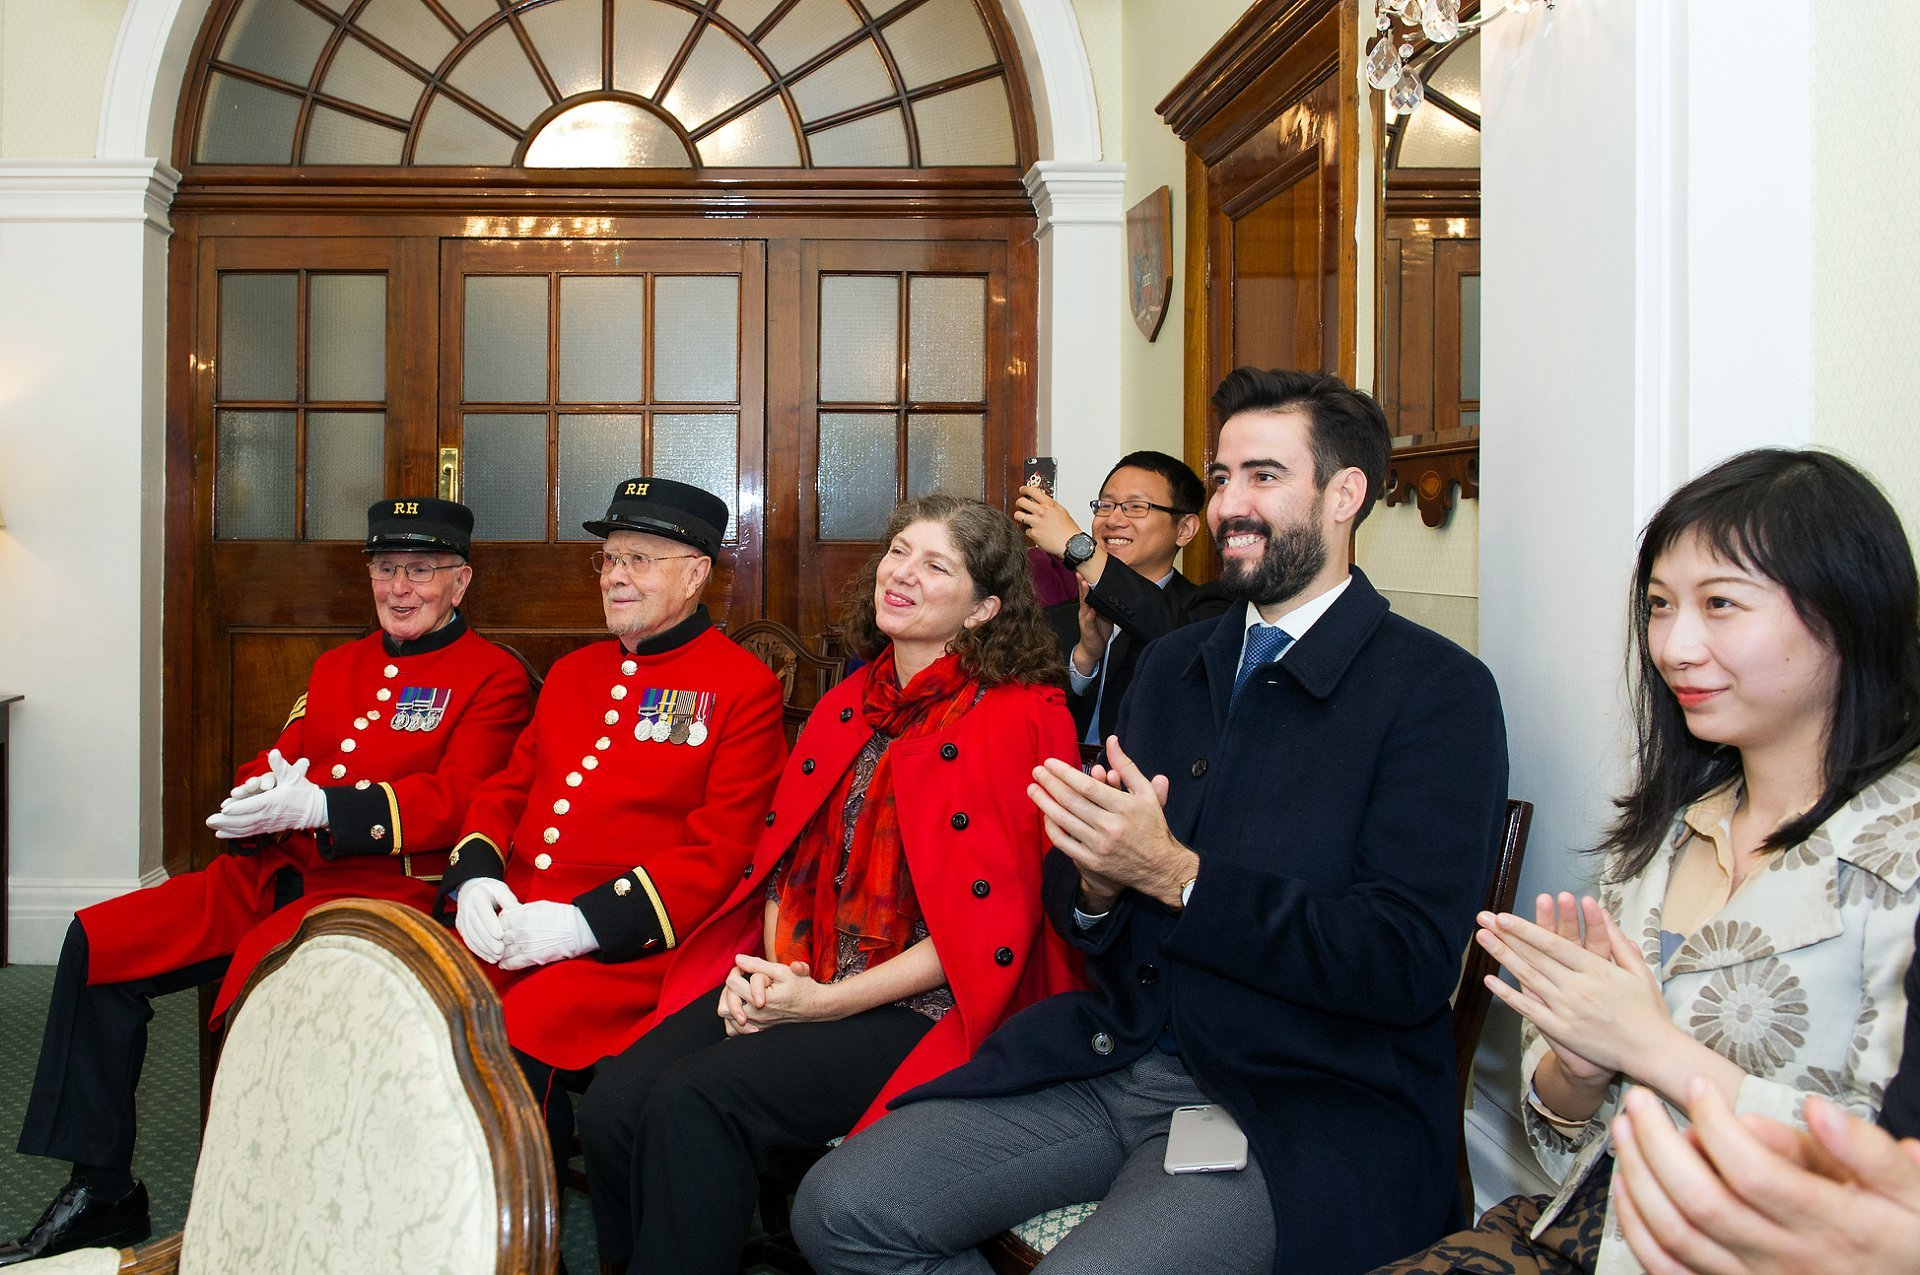 chelsea pensioners from the royal hospital and guests clap the bride and groom at chelsea